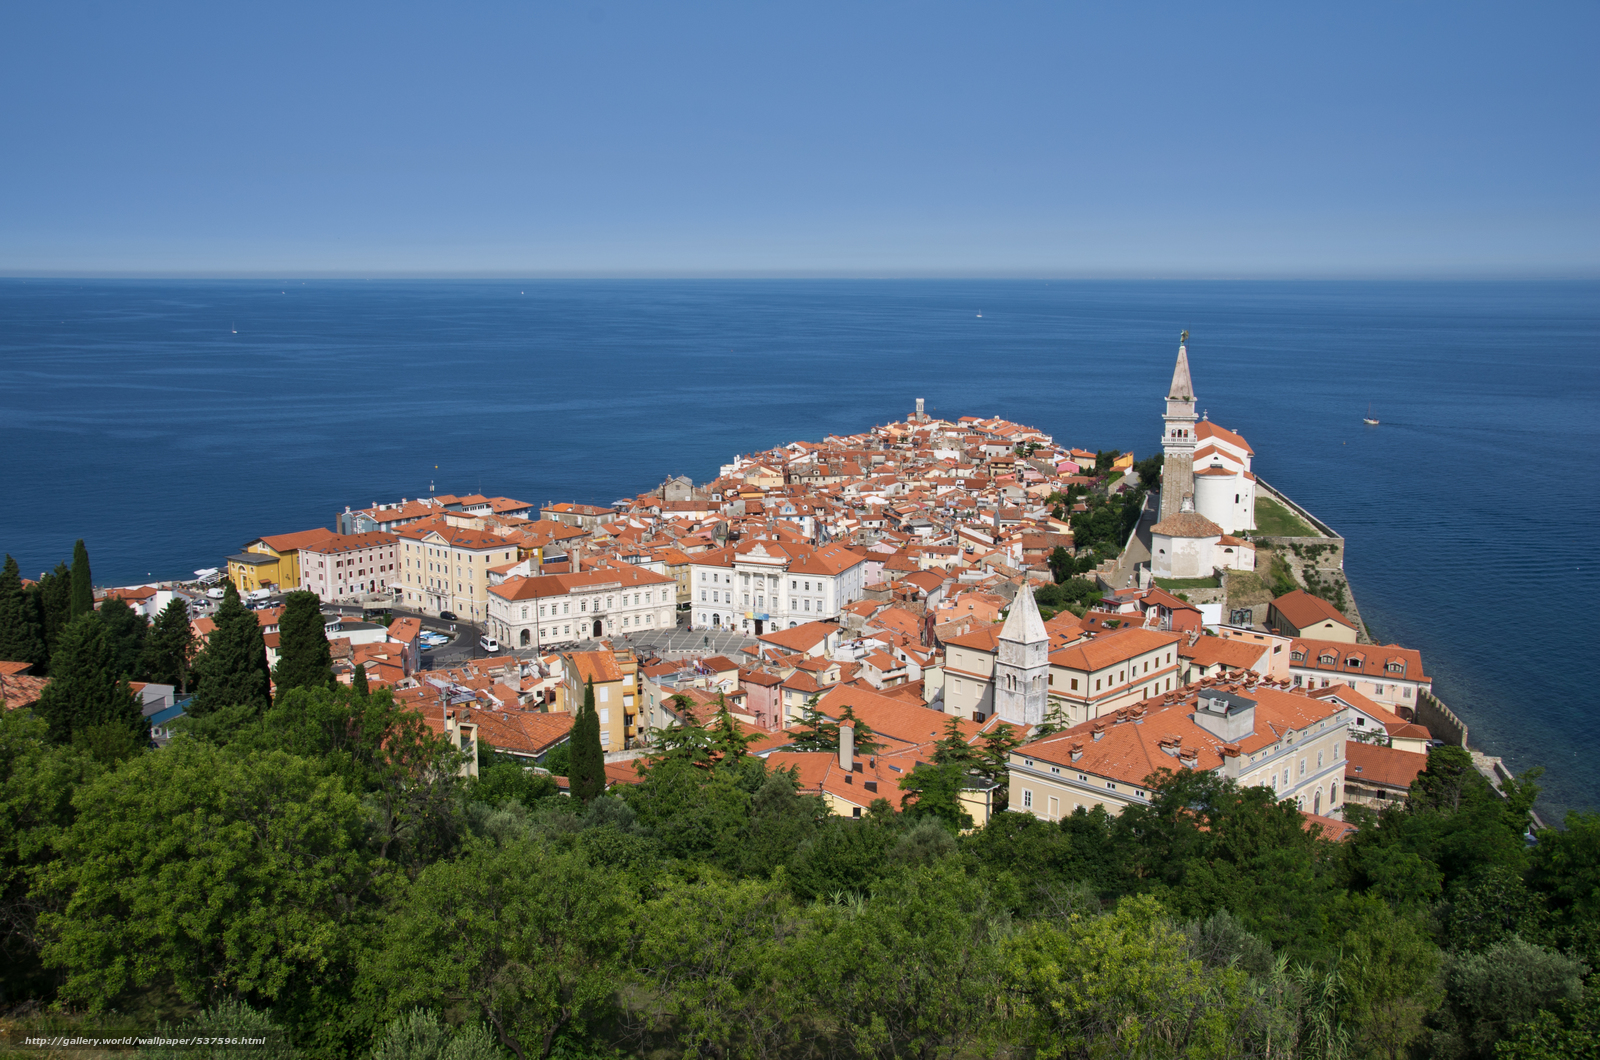 Download wallpaper piran istria slovenia free desktop wallpaper in the resolution 4928x3264 - Walpepar photos ...